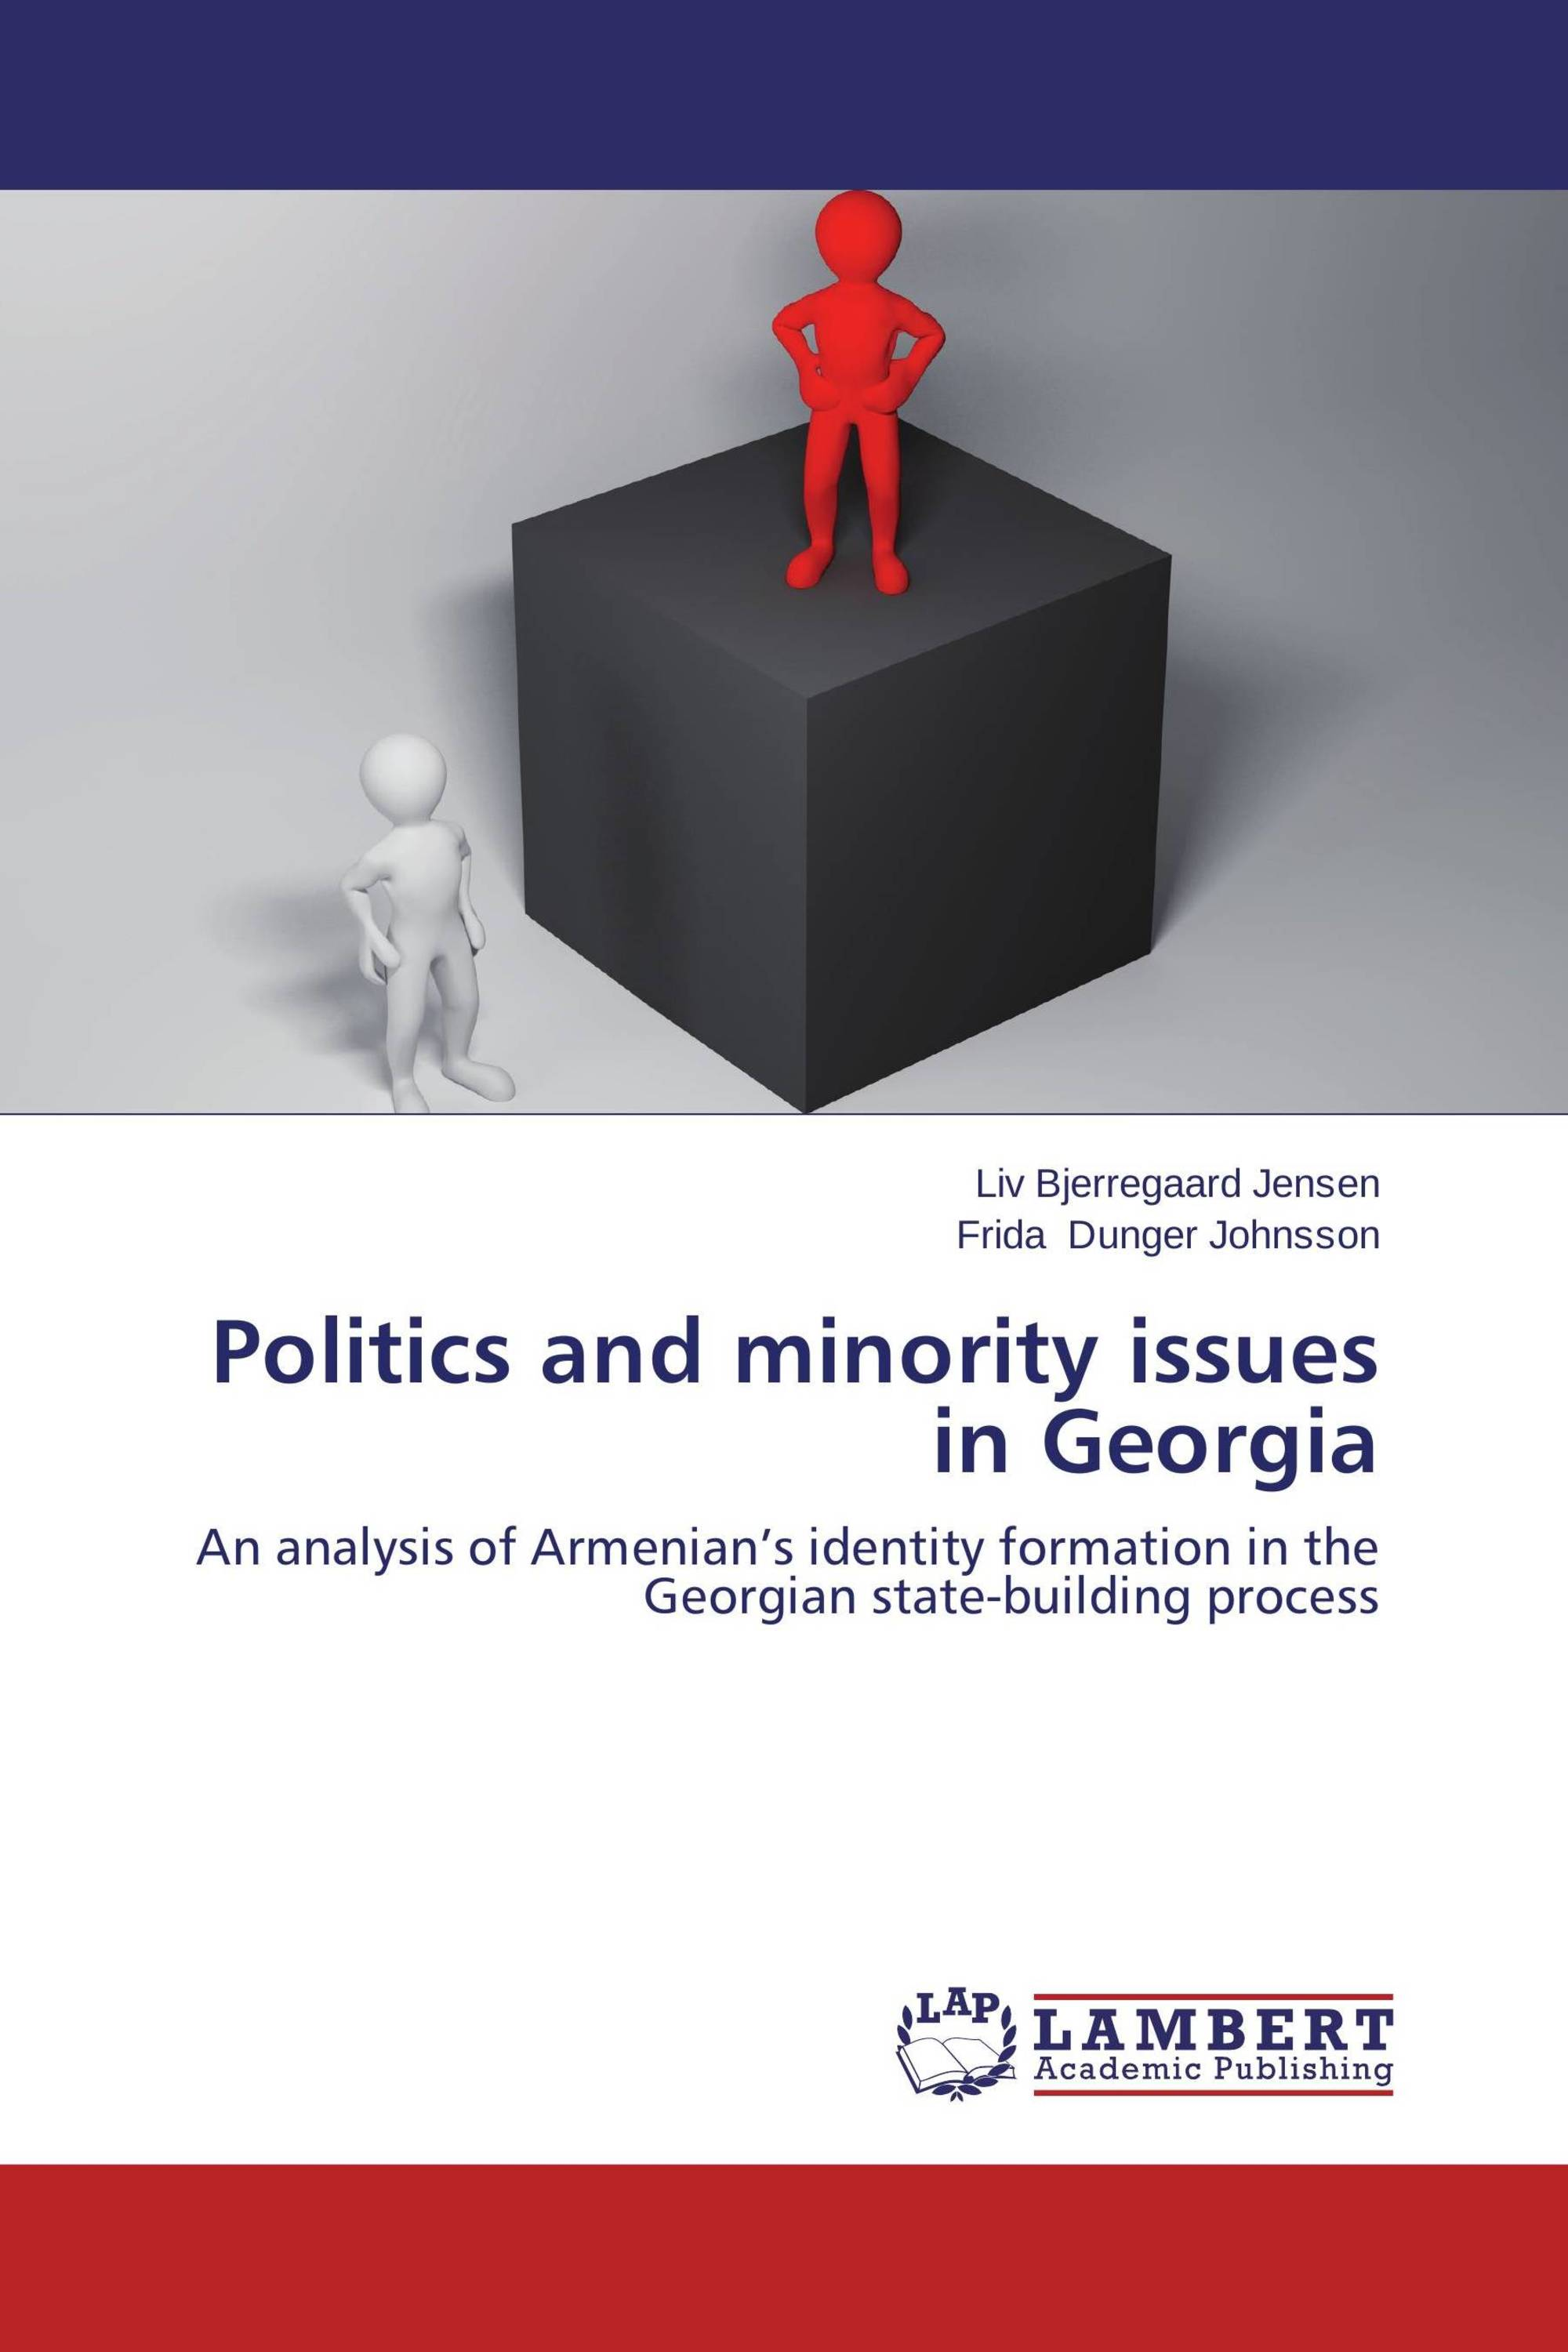 Politics and minority issues in Georgia